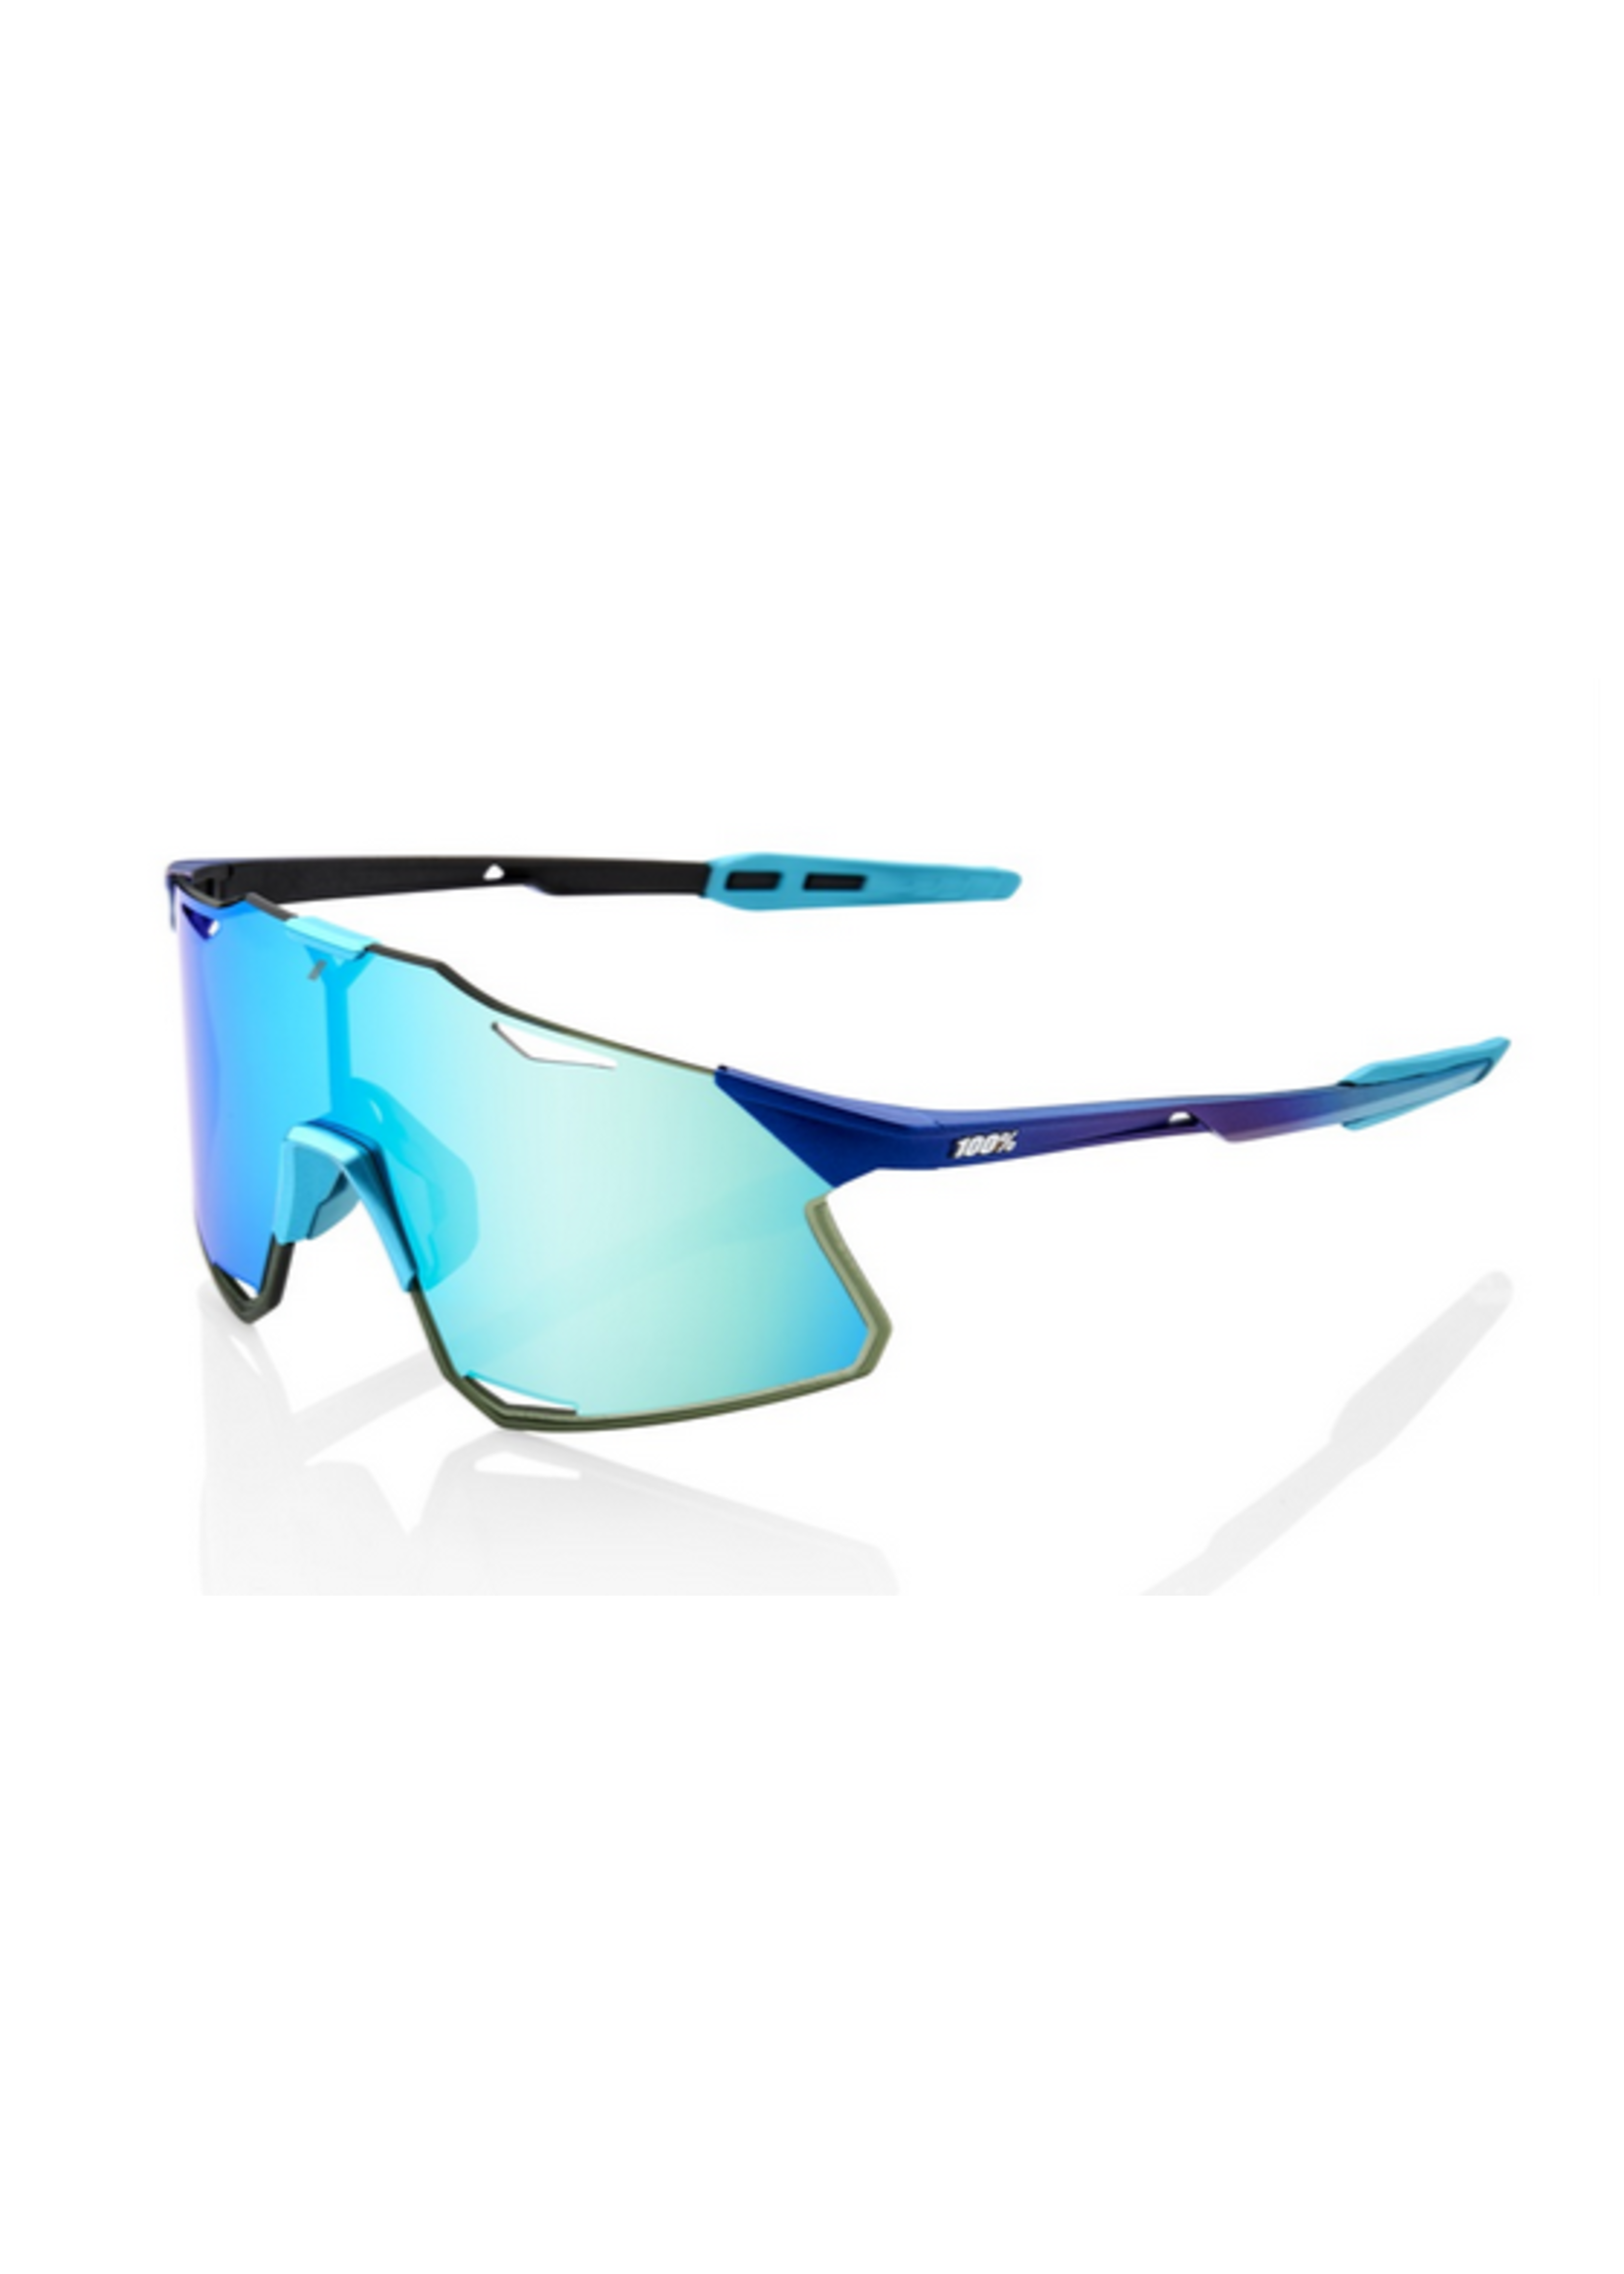 100% 100% Hypercraft Sunglasses